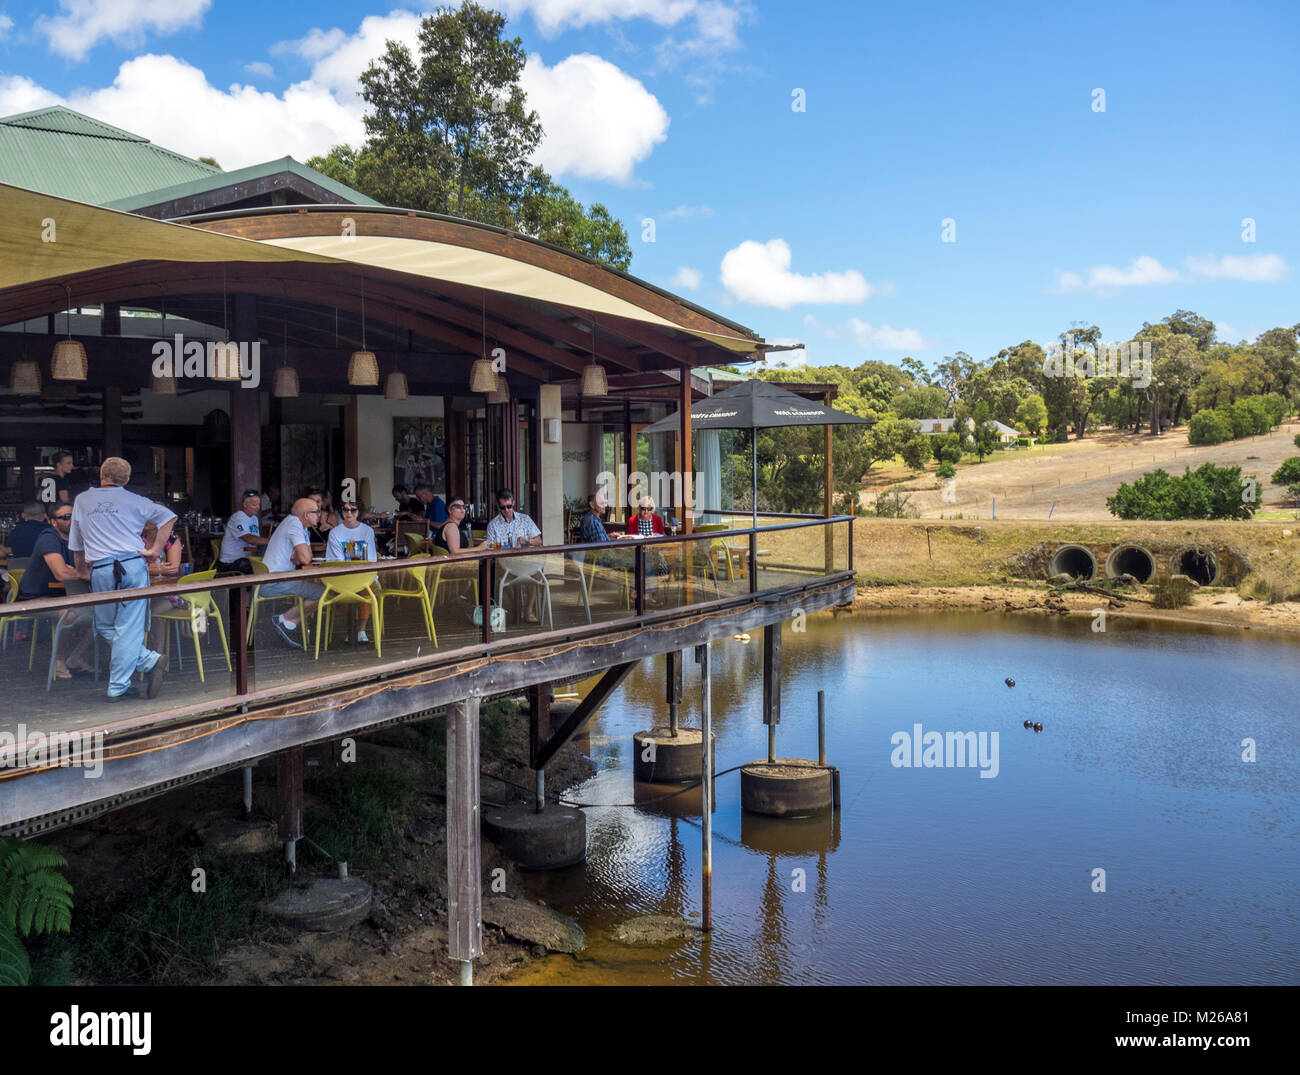 People dining at Little Fish restaurant in Yallingup, WA, Australia. - Stock Image